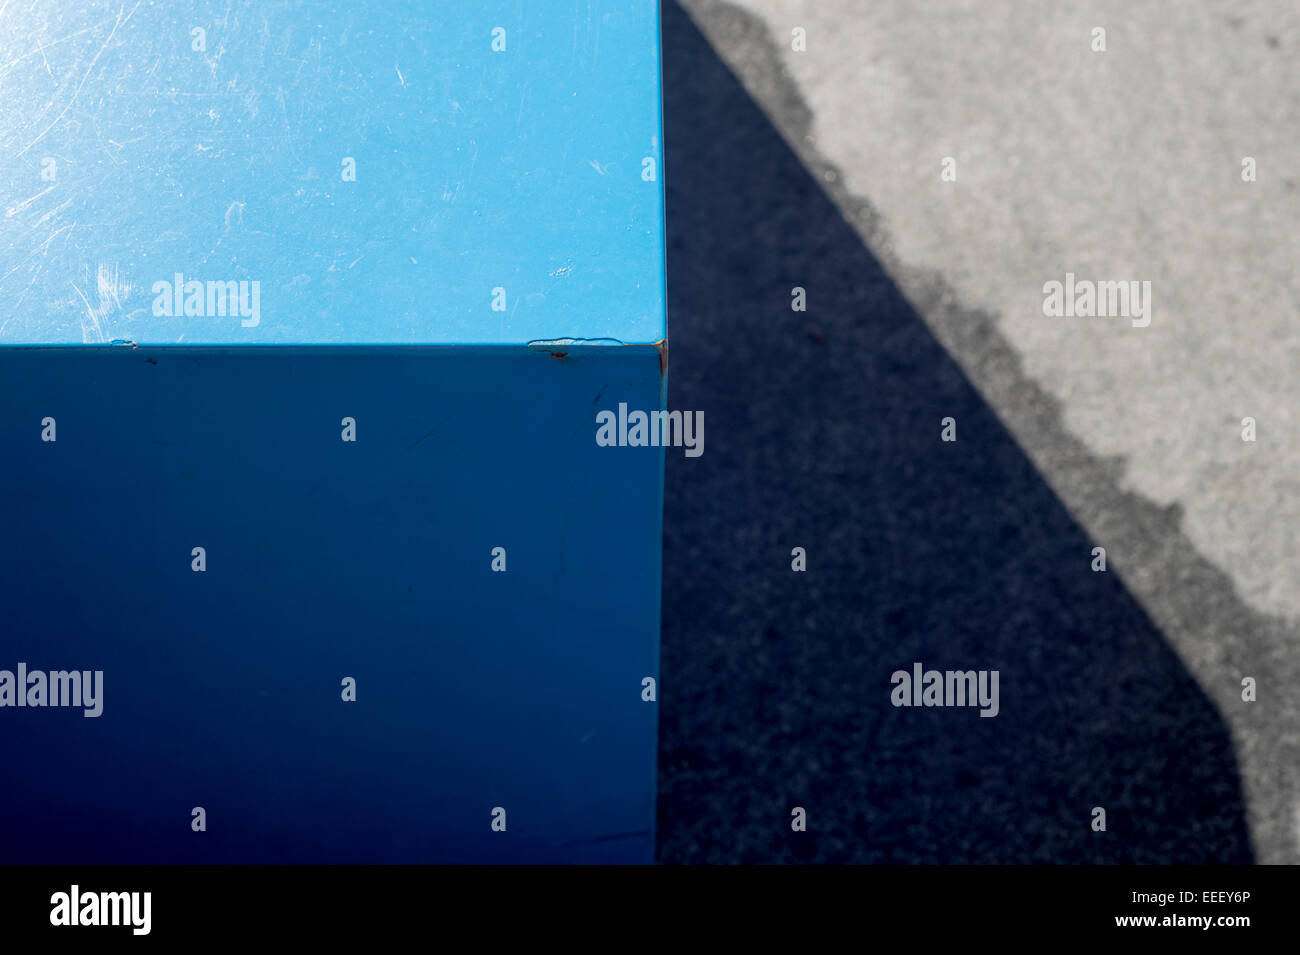 abstract view of the corner of a blue table on a concrete floor - Stock Image